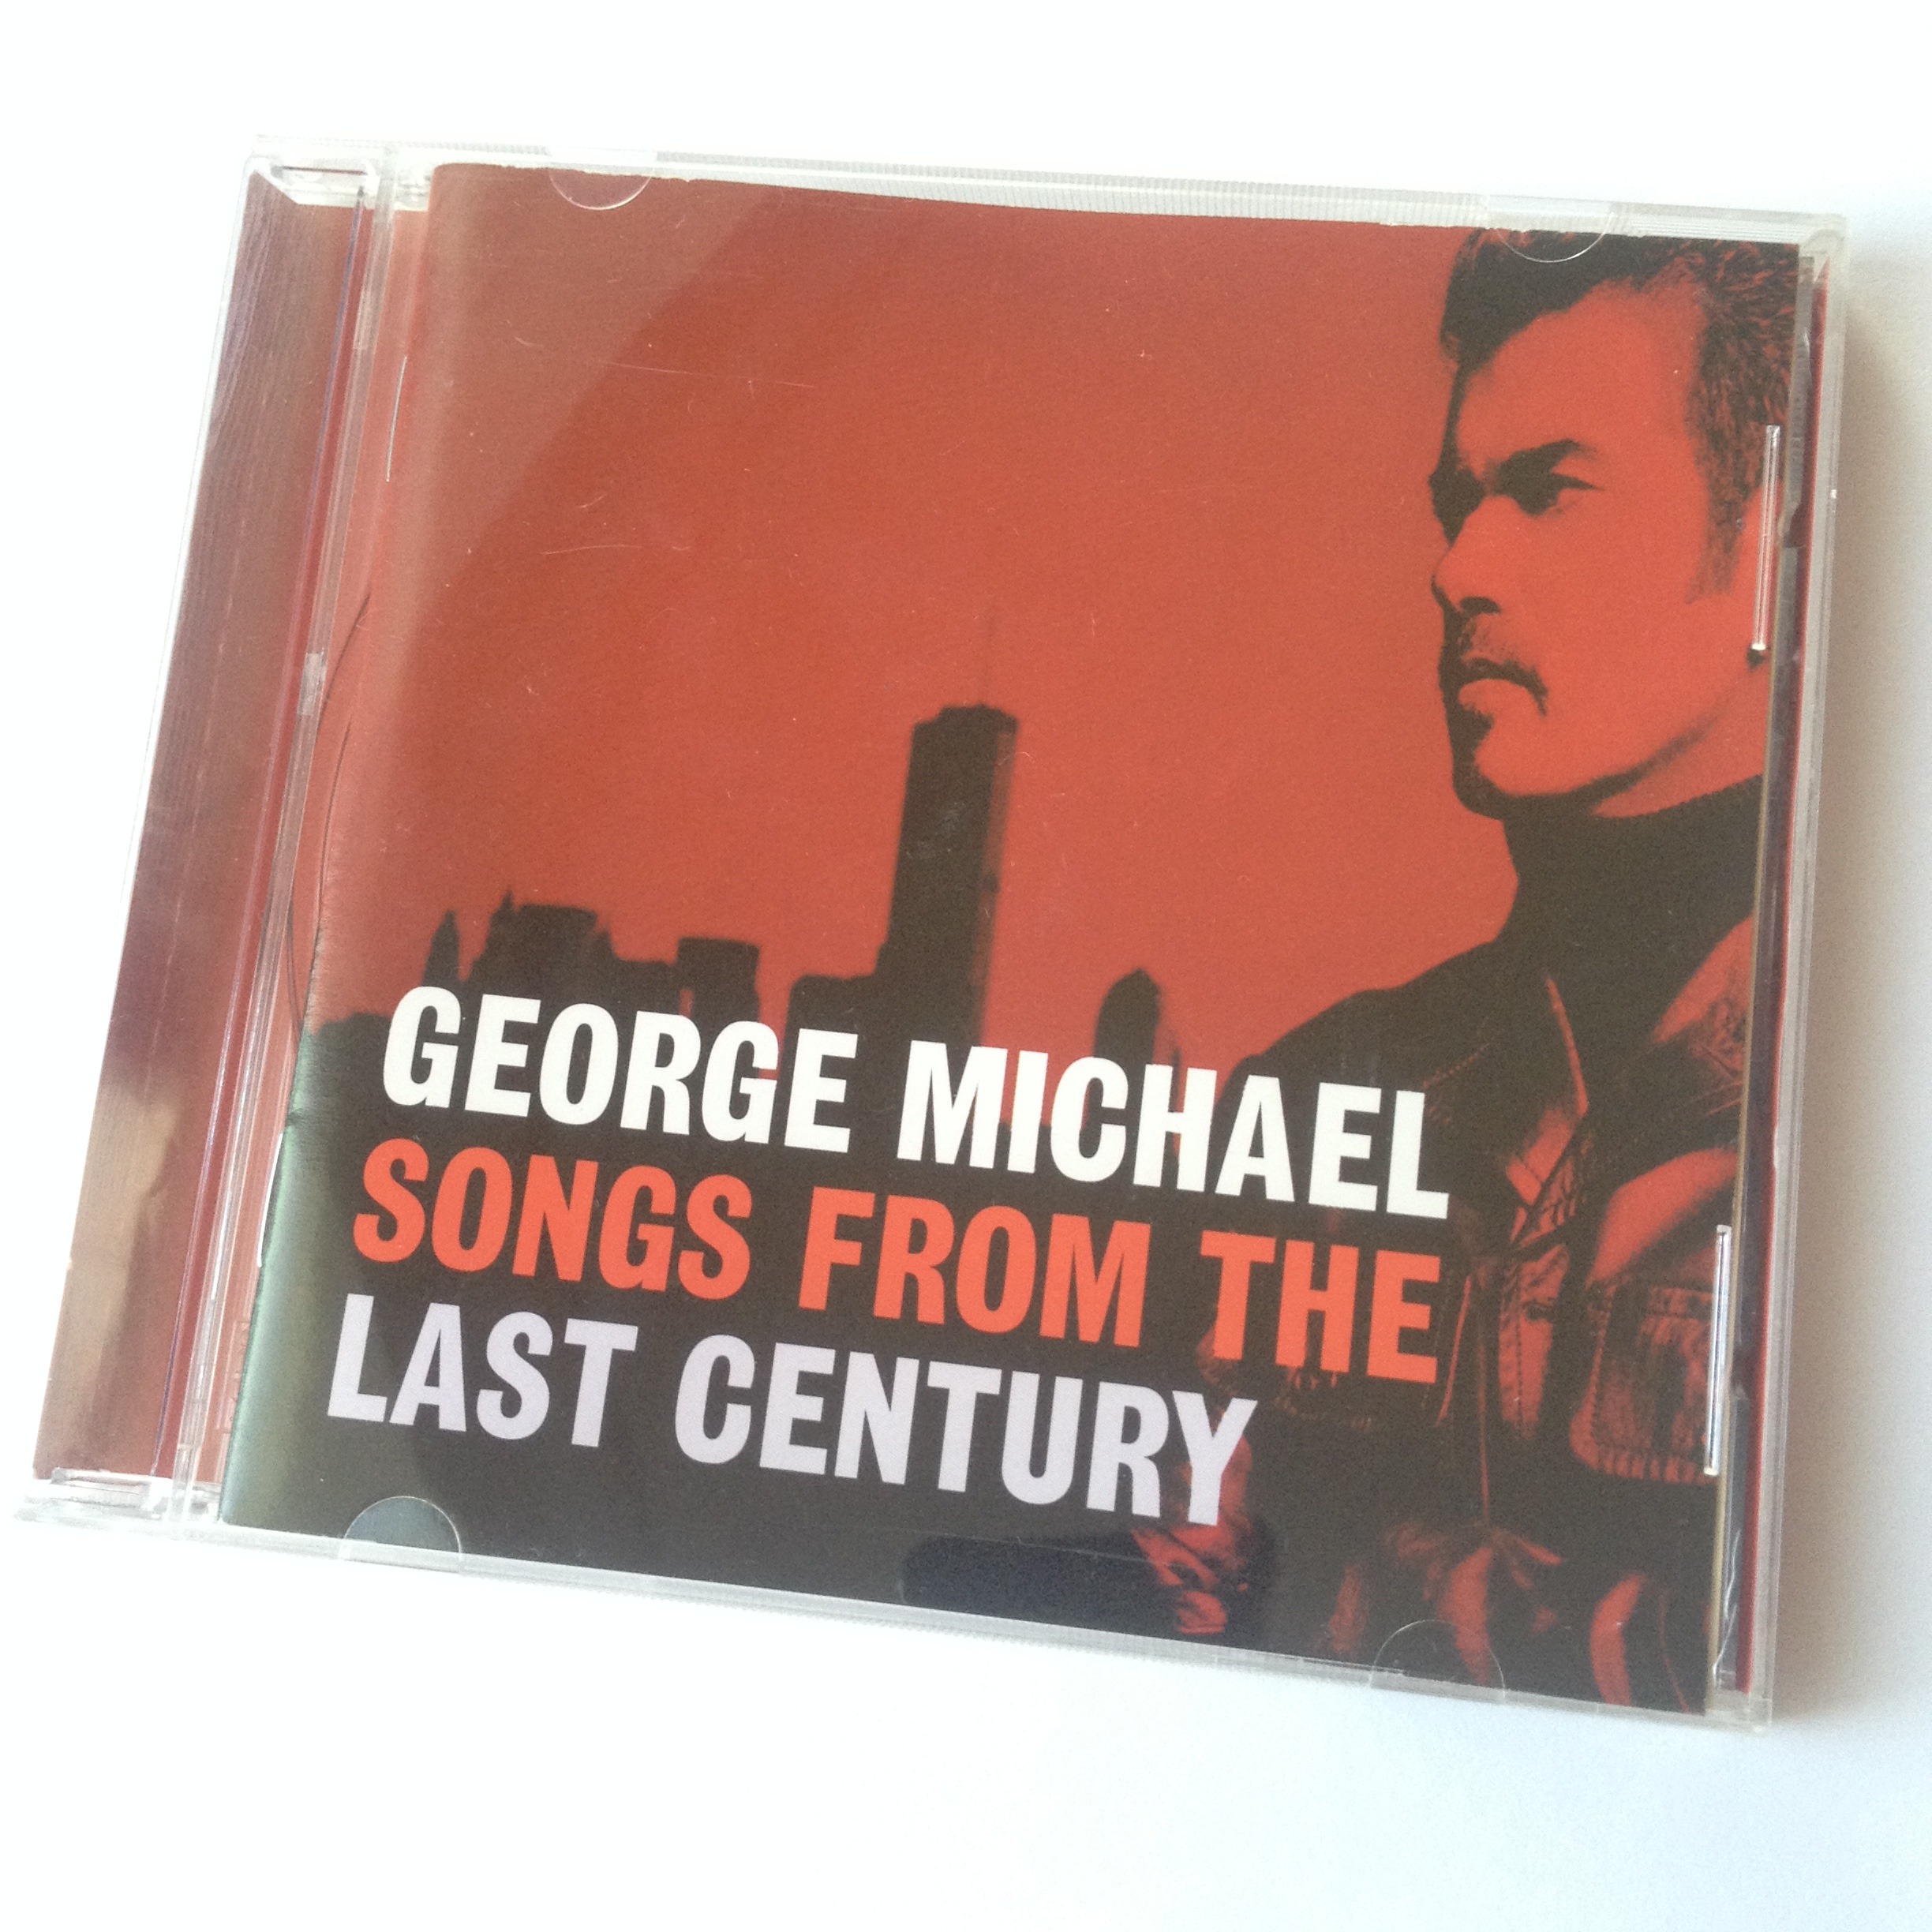 картинка George Michael - Songs from the last century от магазина artKraina.com